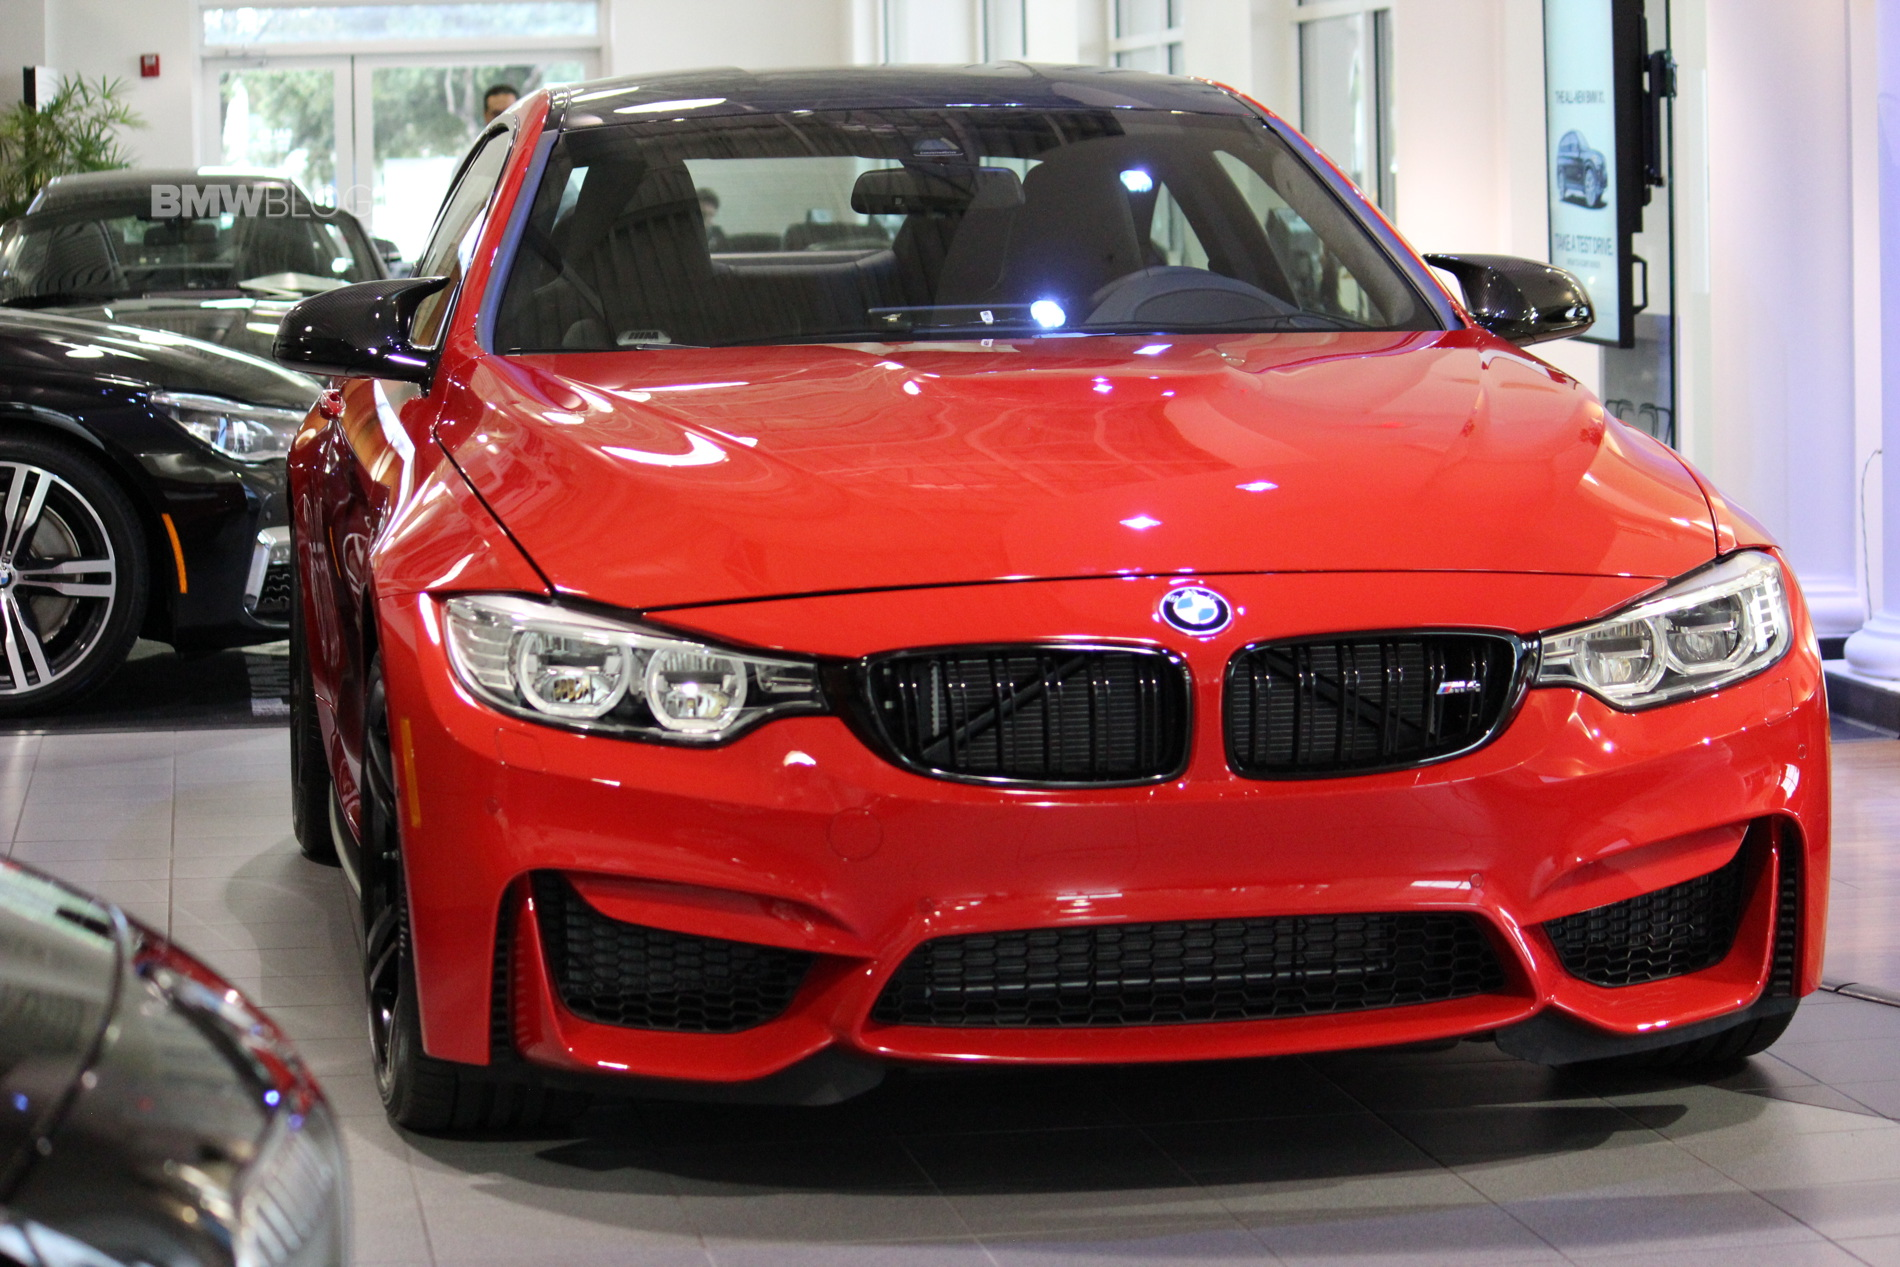 Bmw M4 In Ferrari Red Looks Gorgeous